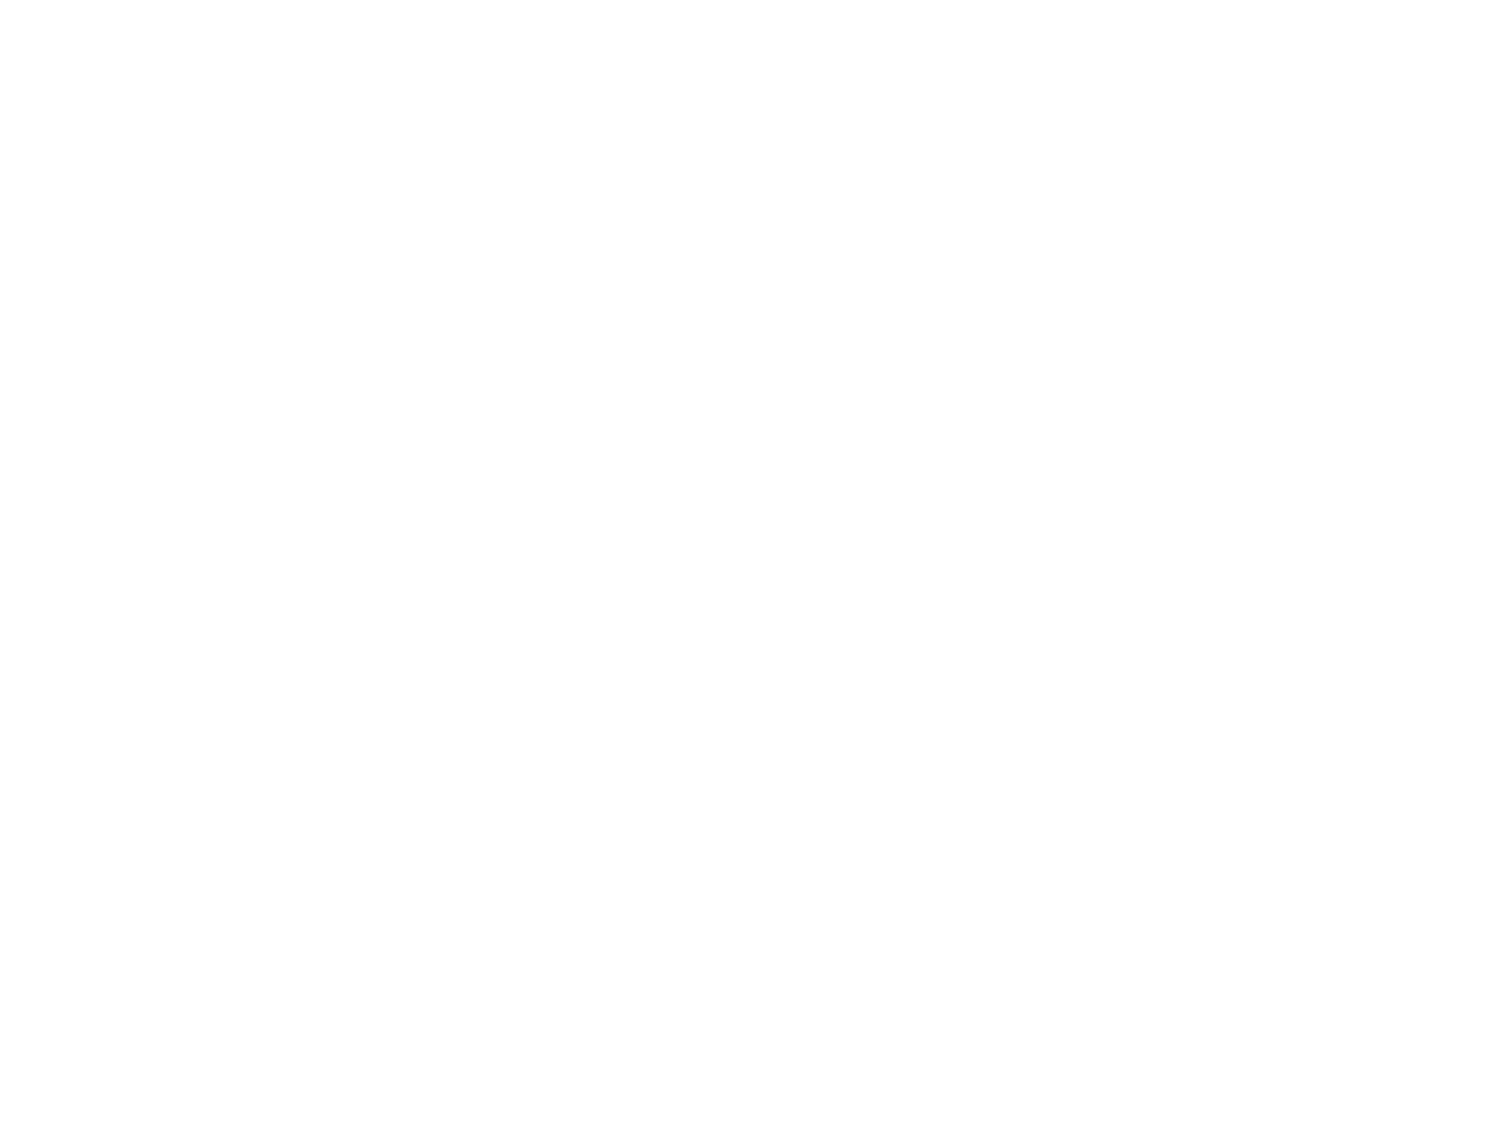 T Creating Co.